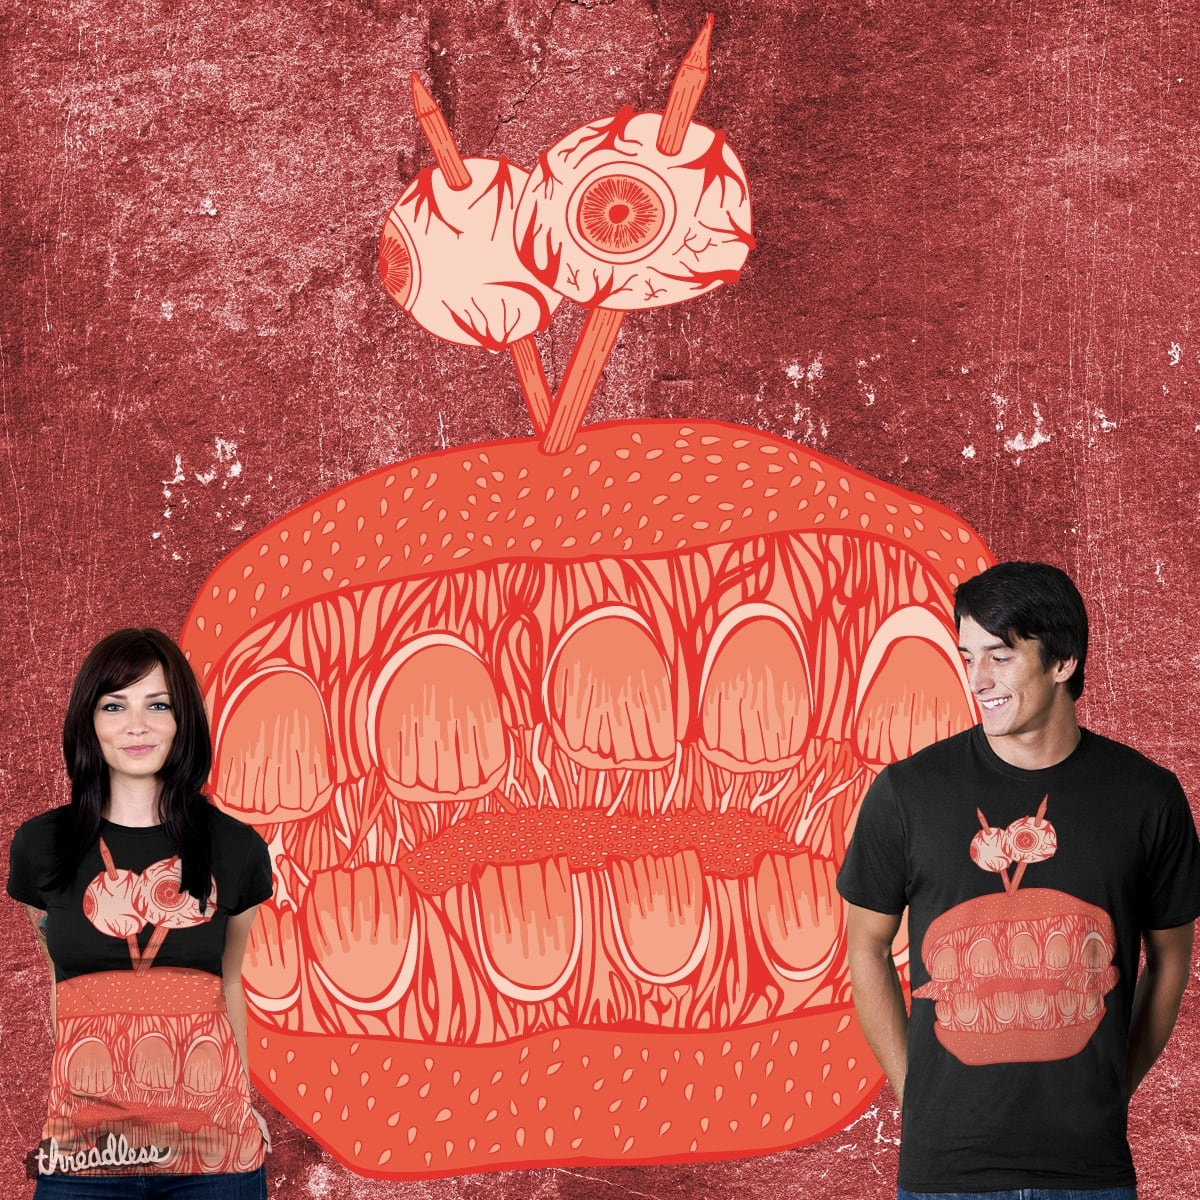 Burgers Are Us by Whipbot on Threadless